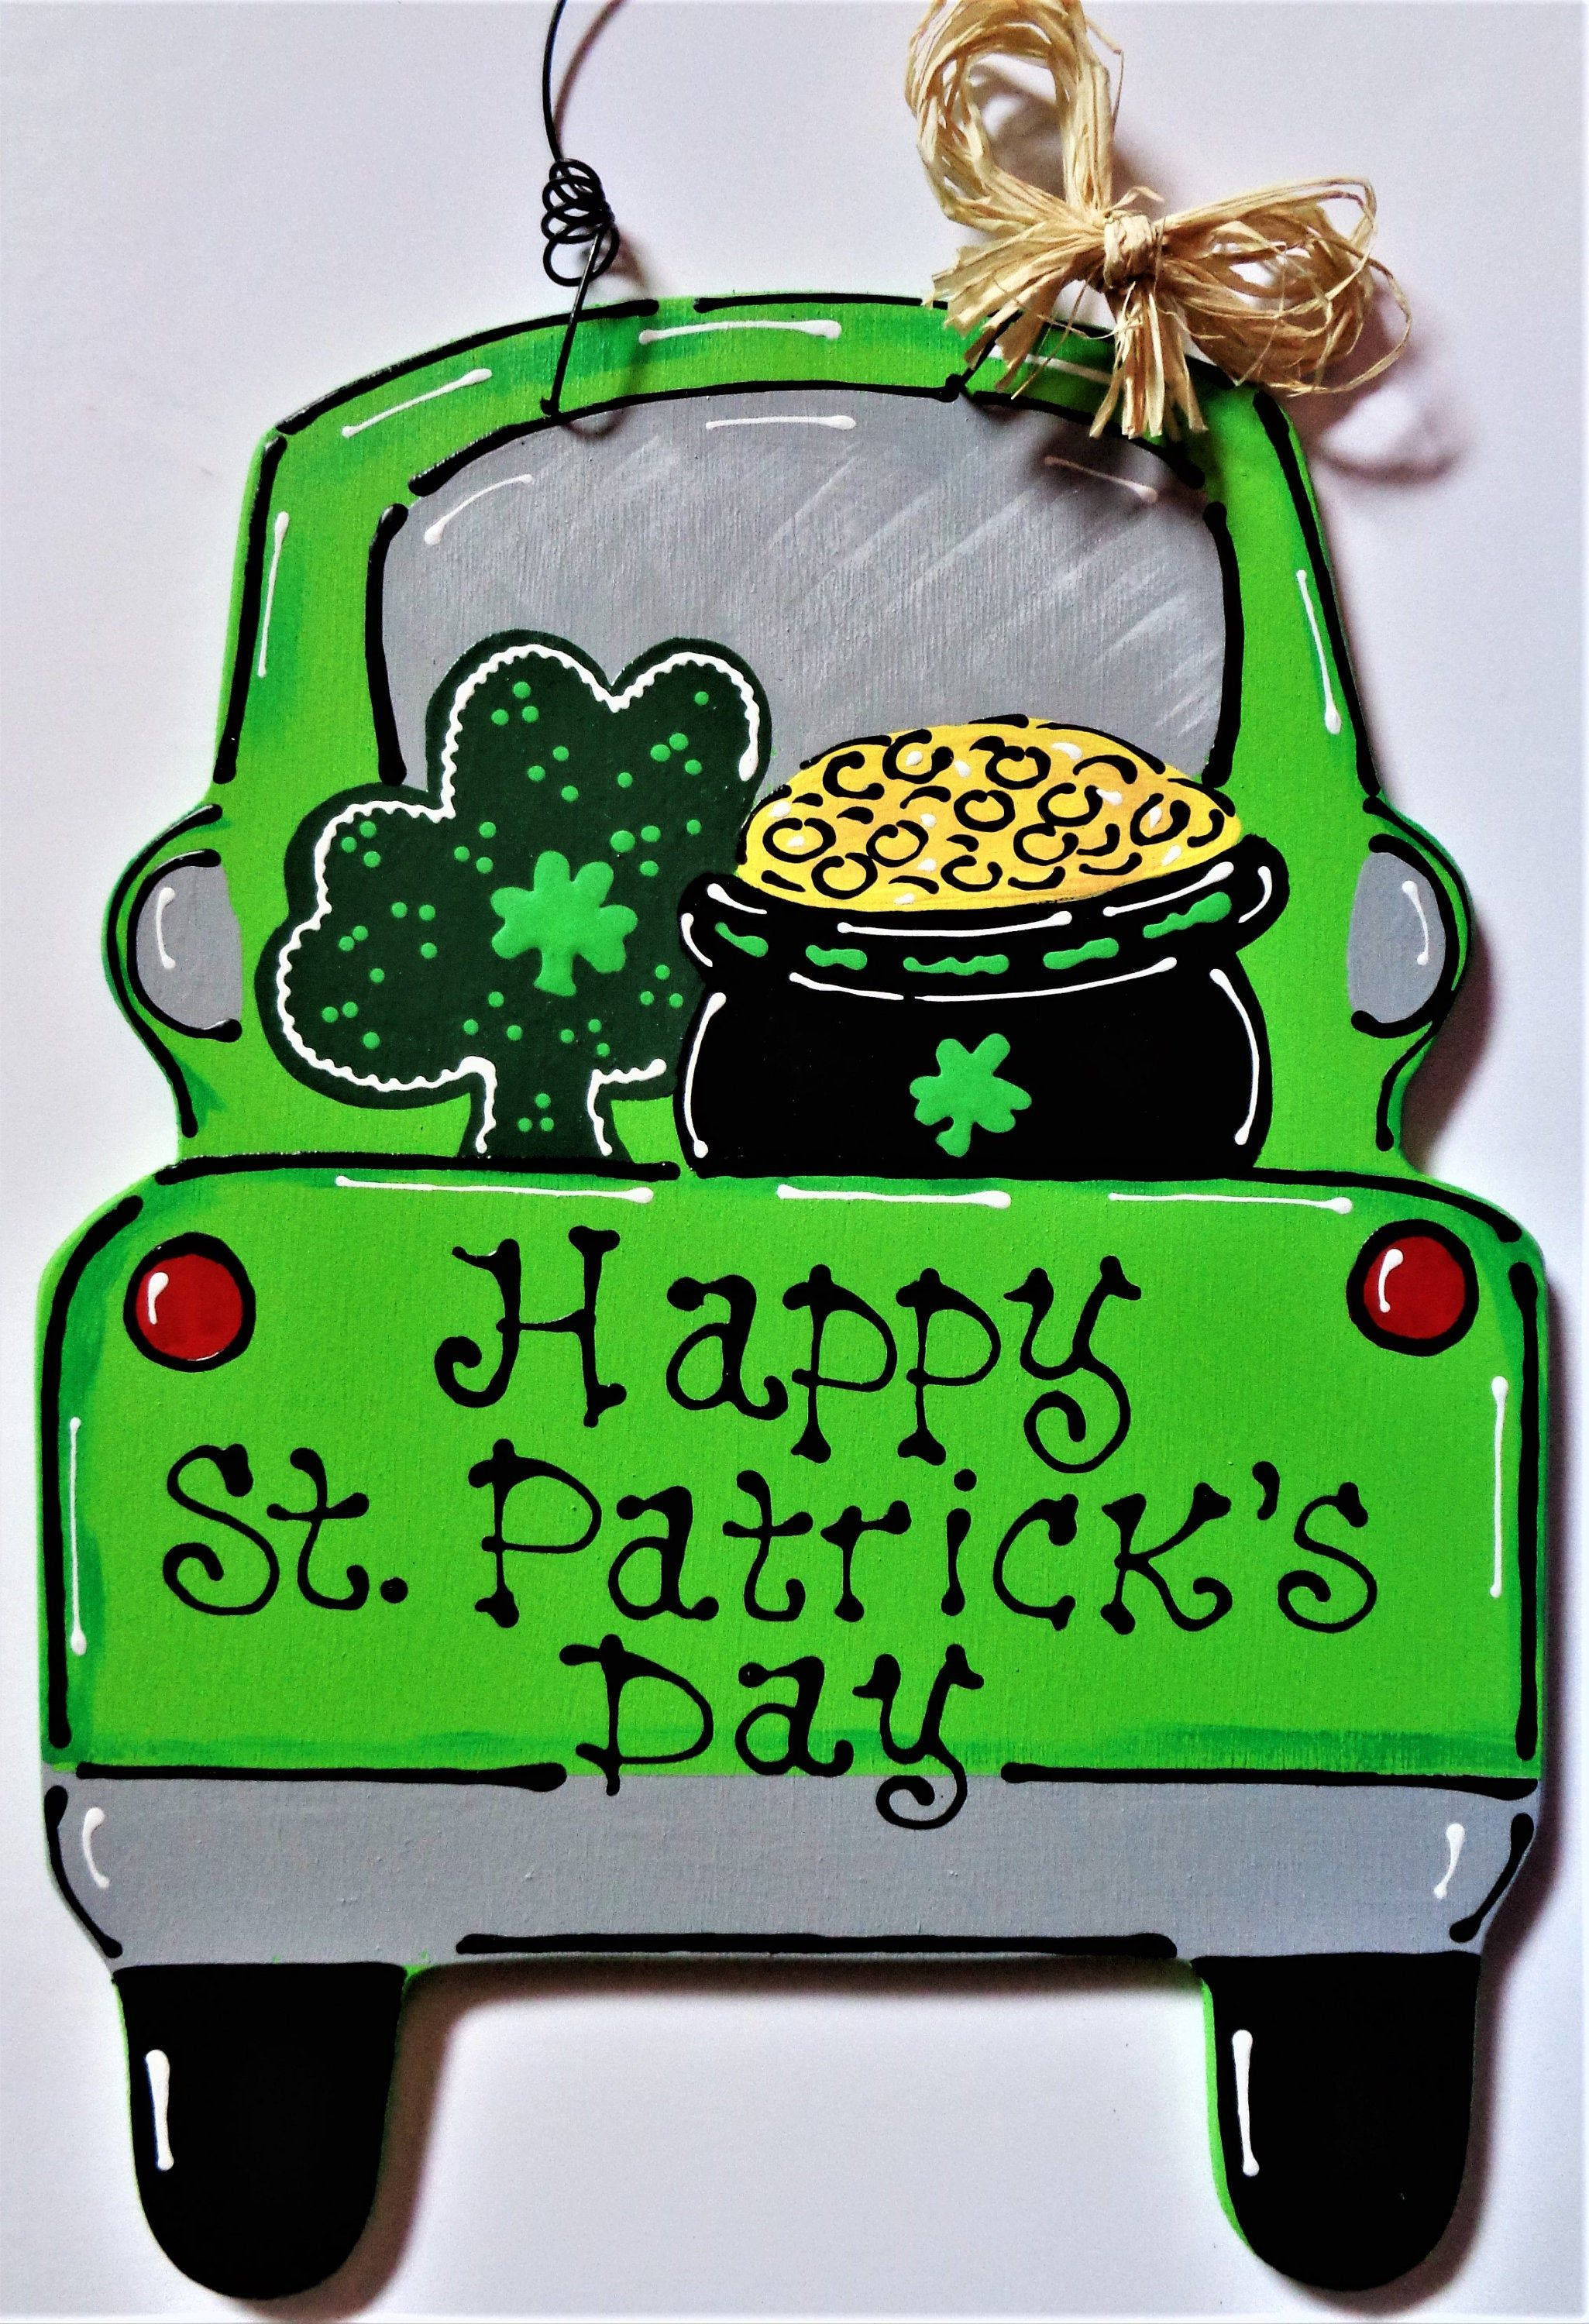 Happy st patricks day vintage style truck sign wall door